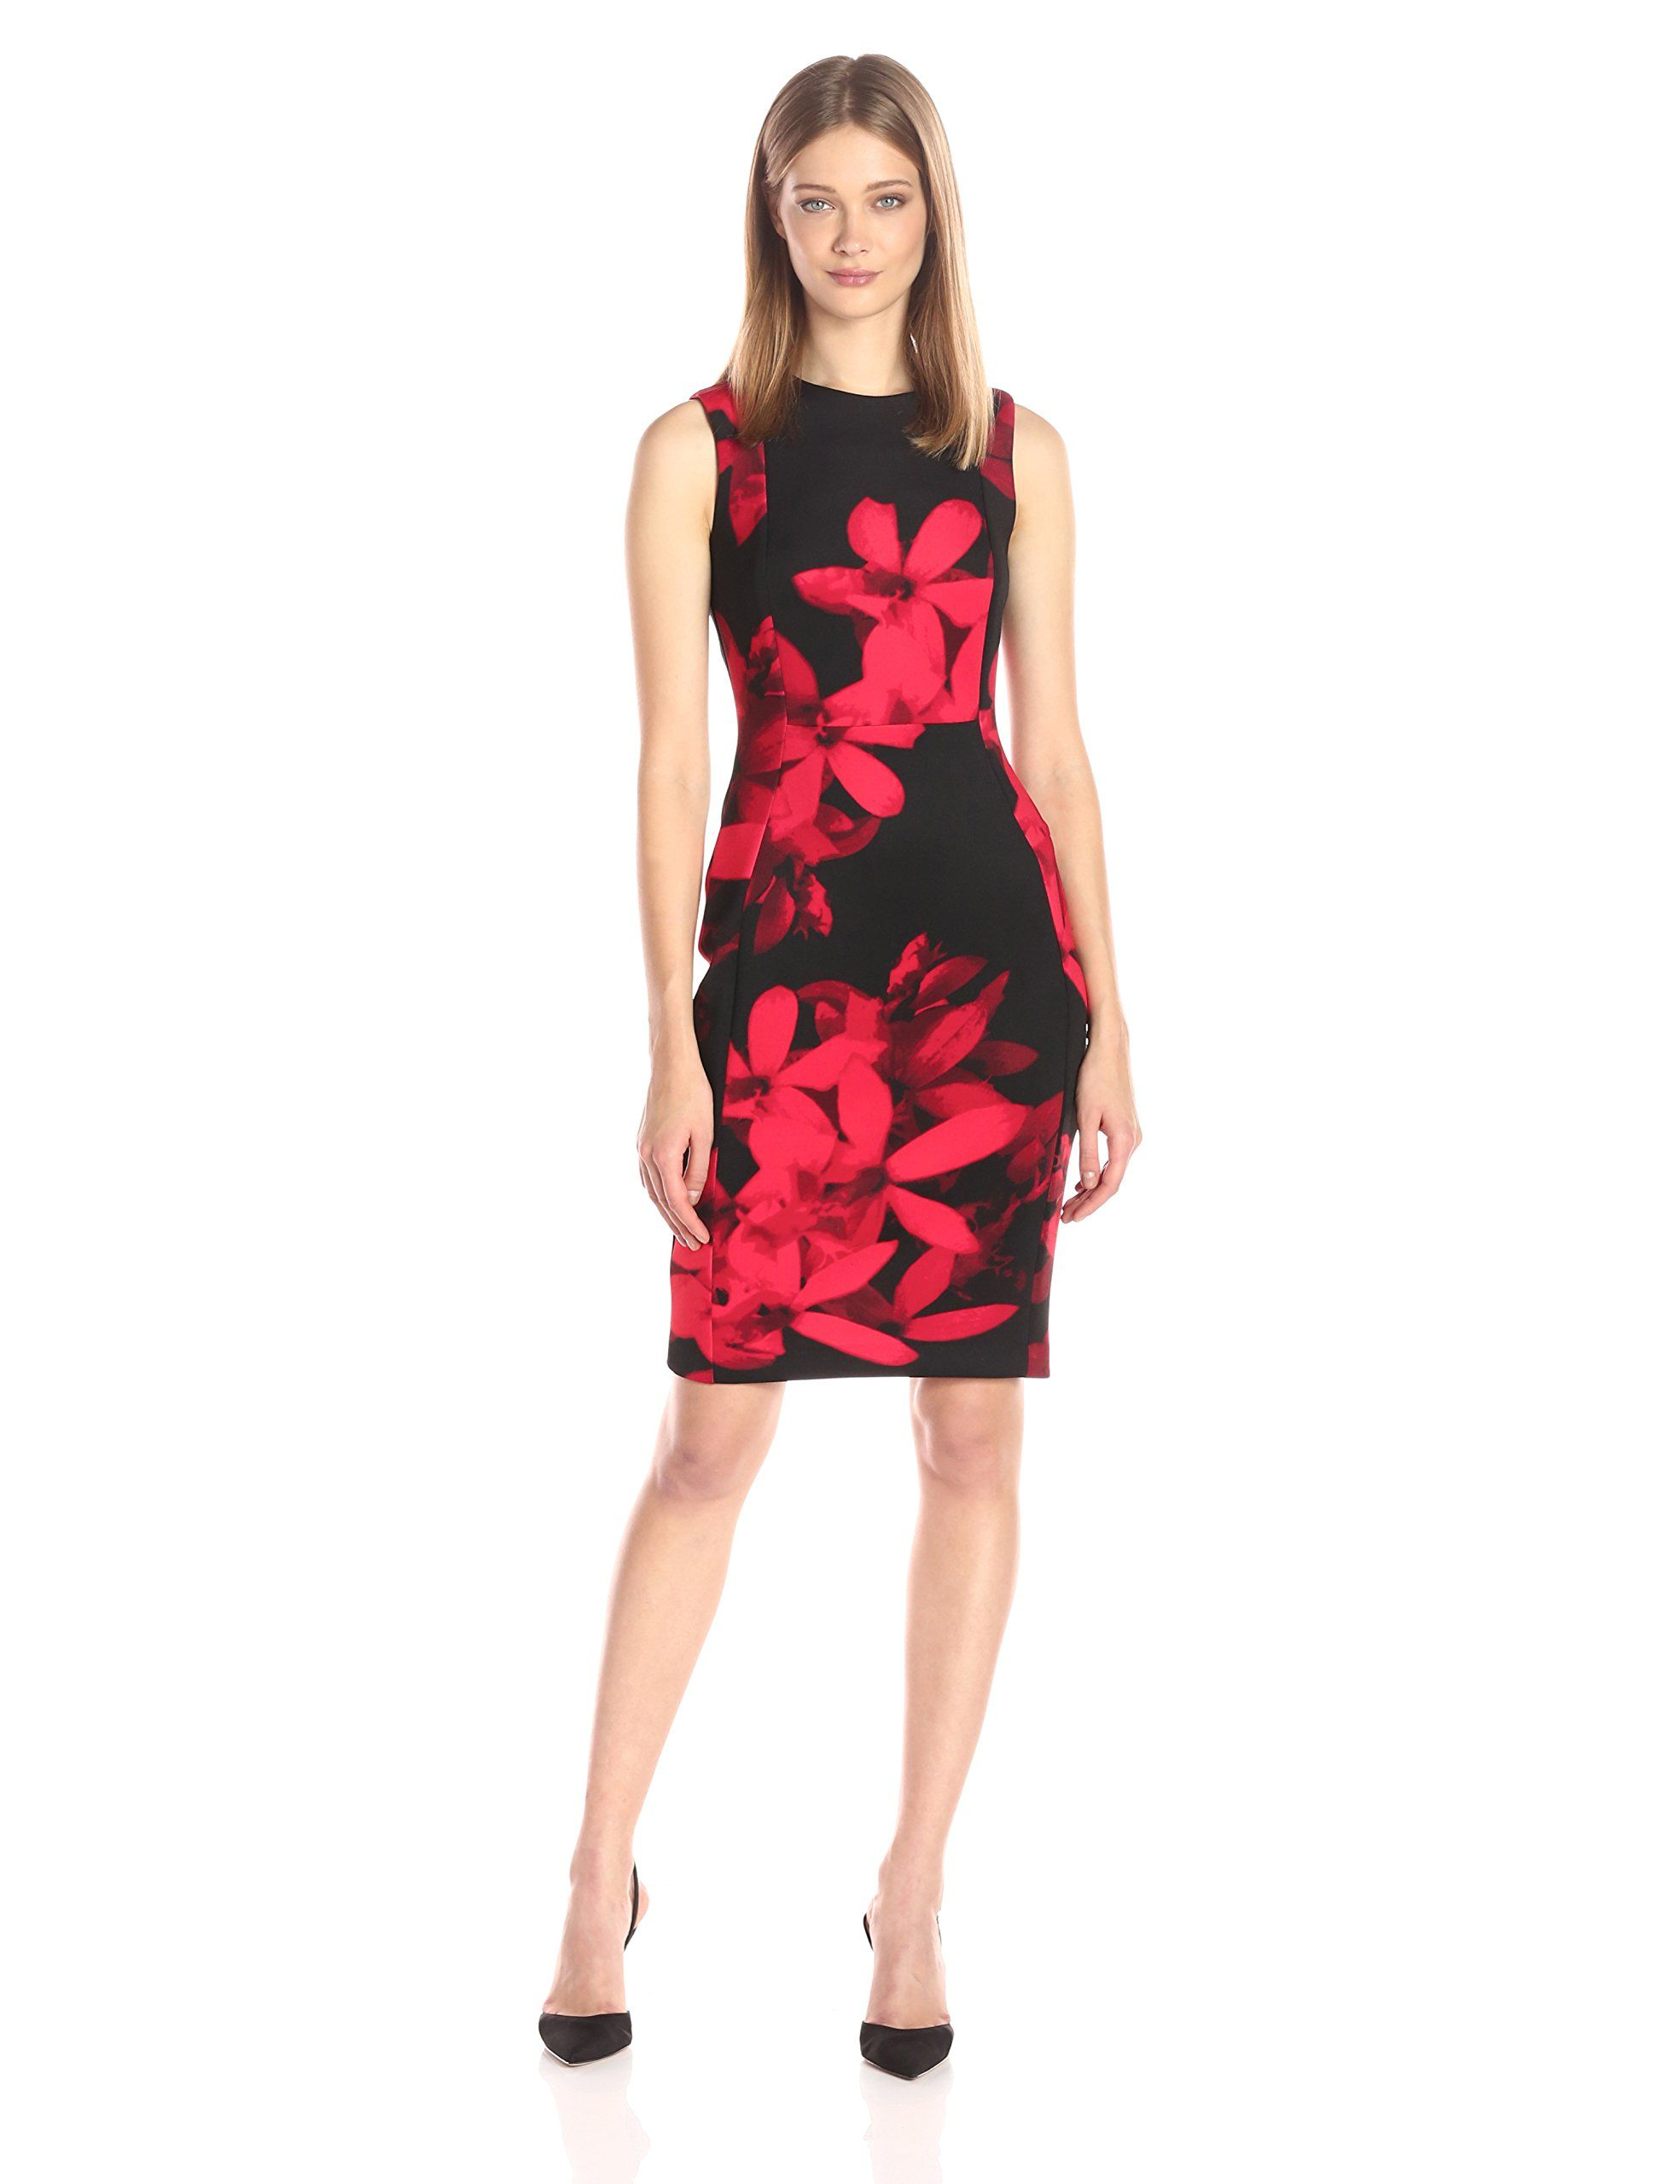 15cd1938 Calvin Klein Women's Sleeveless Scuba Sheath in Floral Print ...